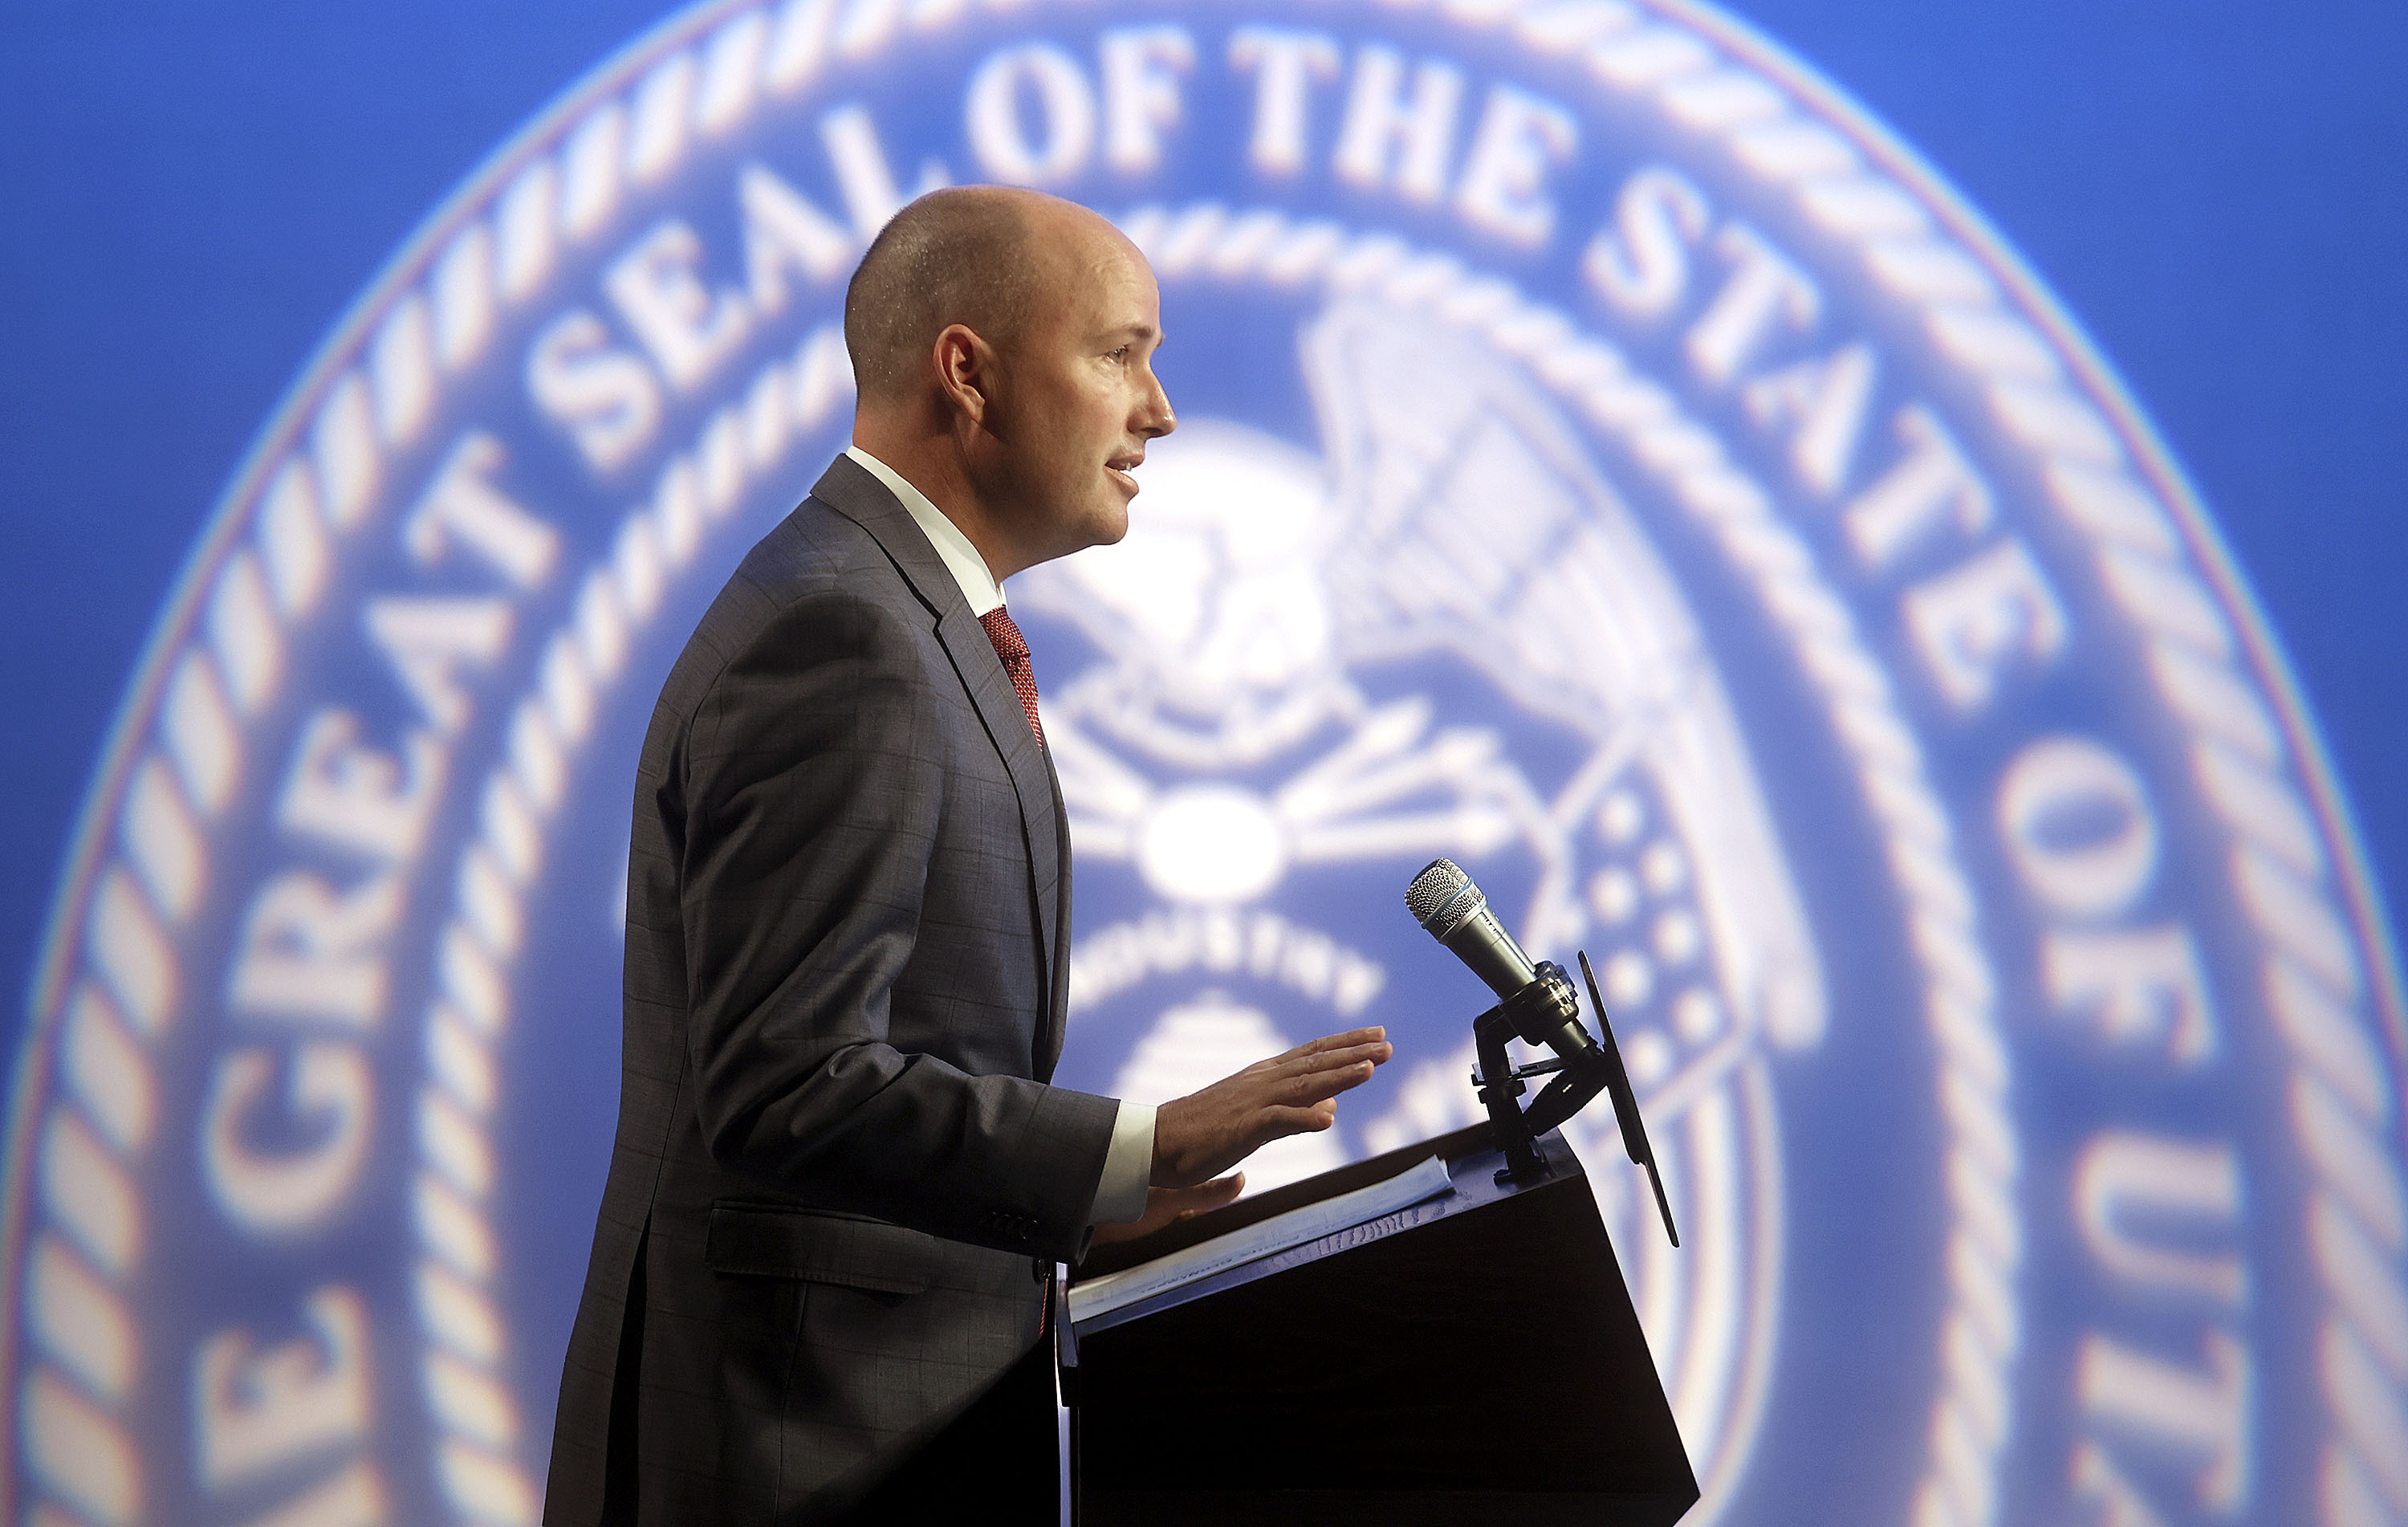 Gov. Spencer Cox speaks during the PBS Utah Governor's Monthly News Conference at the Eccles Broadcast Center in Salt Lake City on Thursday, April 15, 2021.